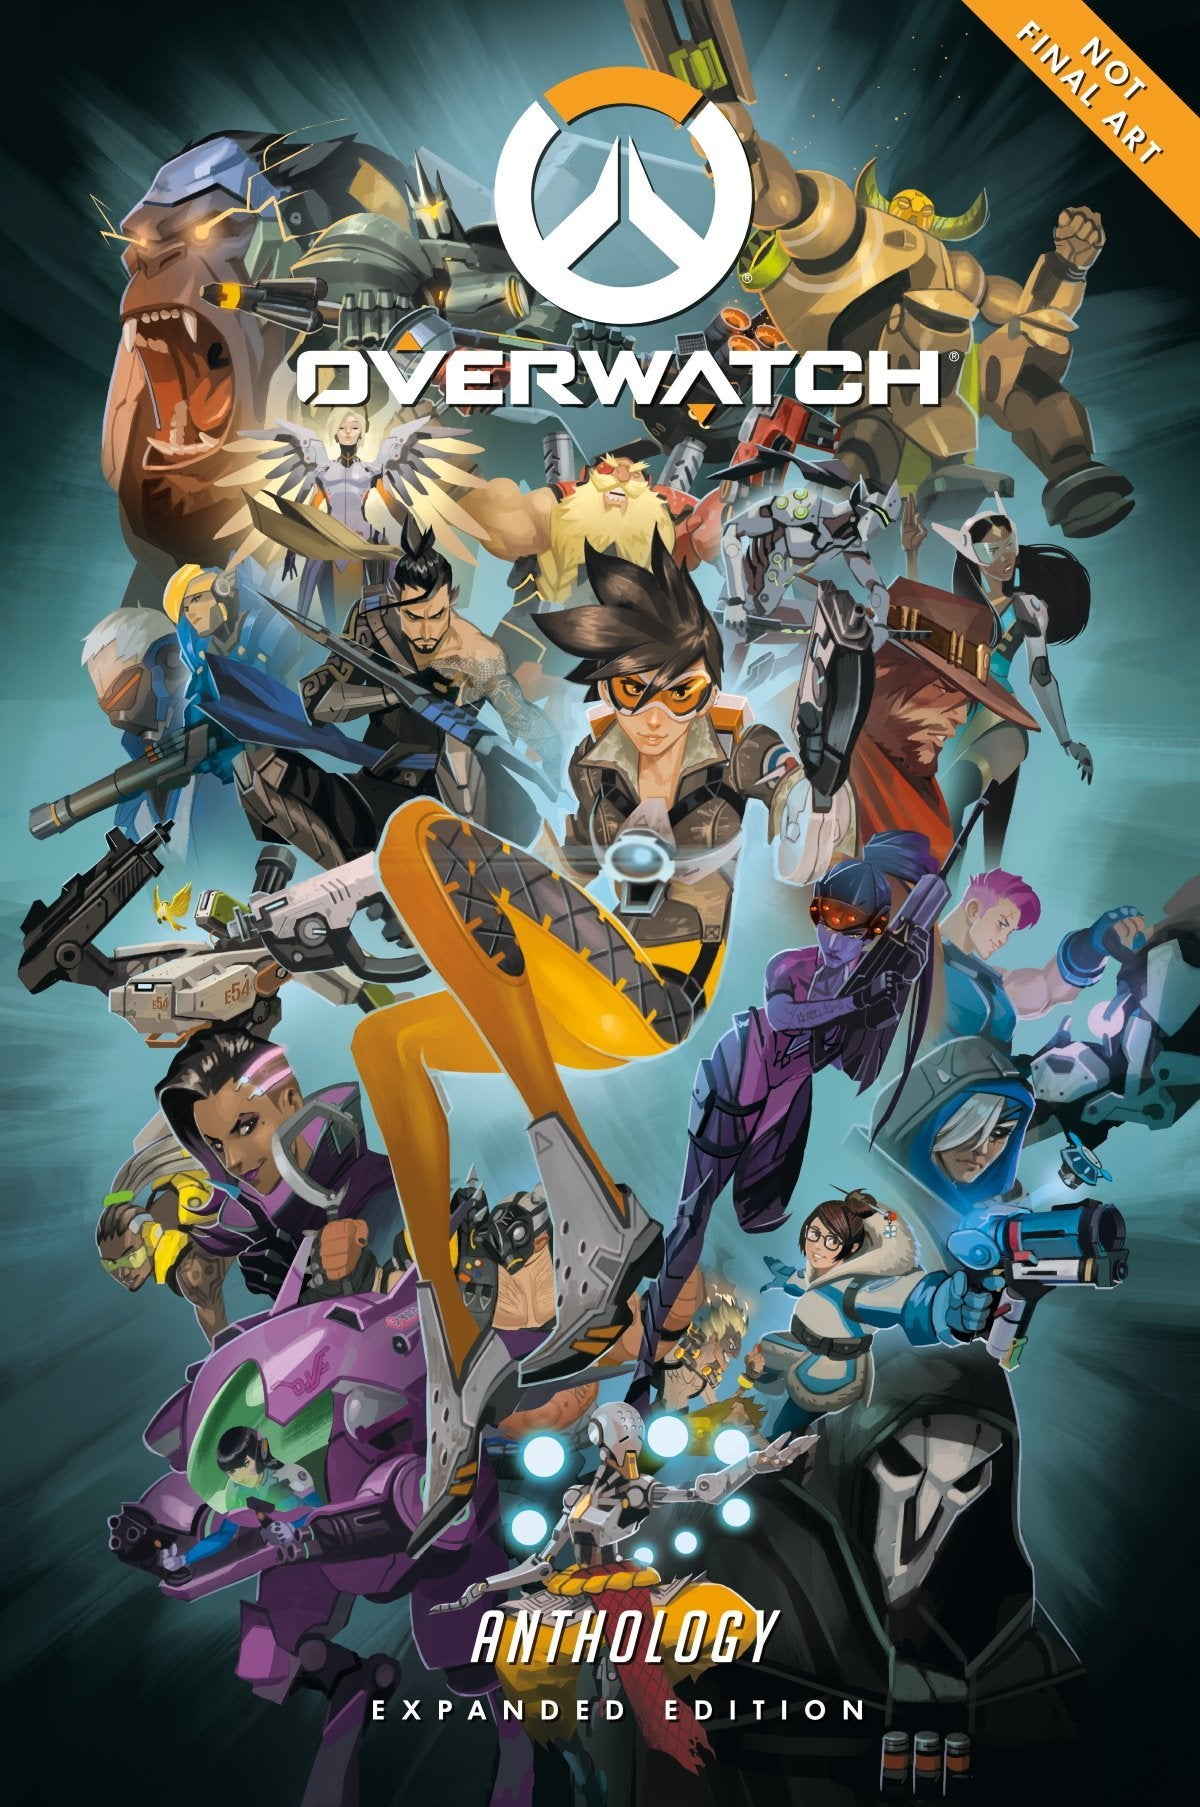 overwatch anthology expanded edition full